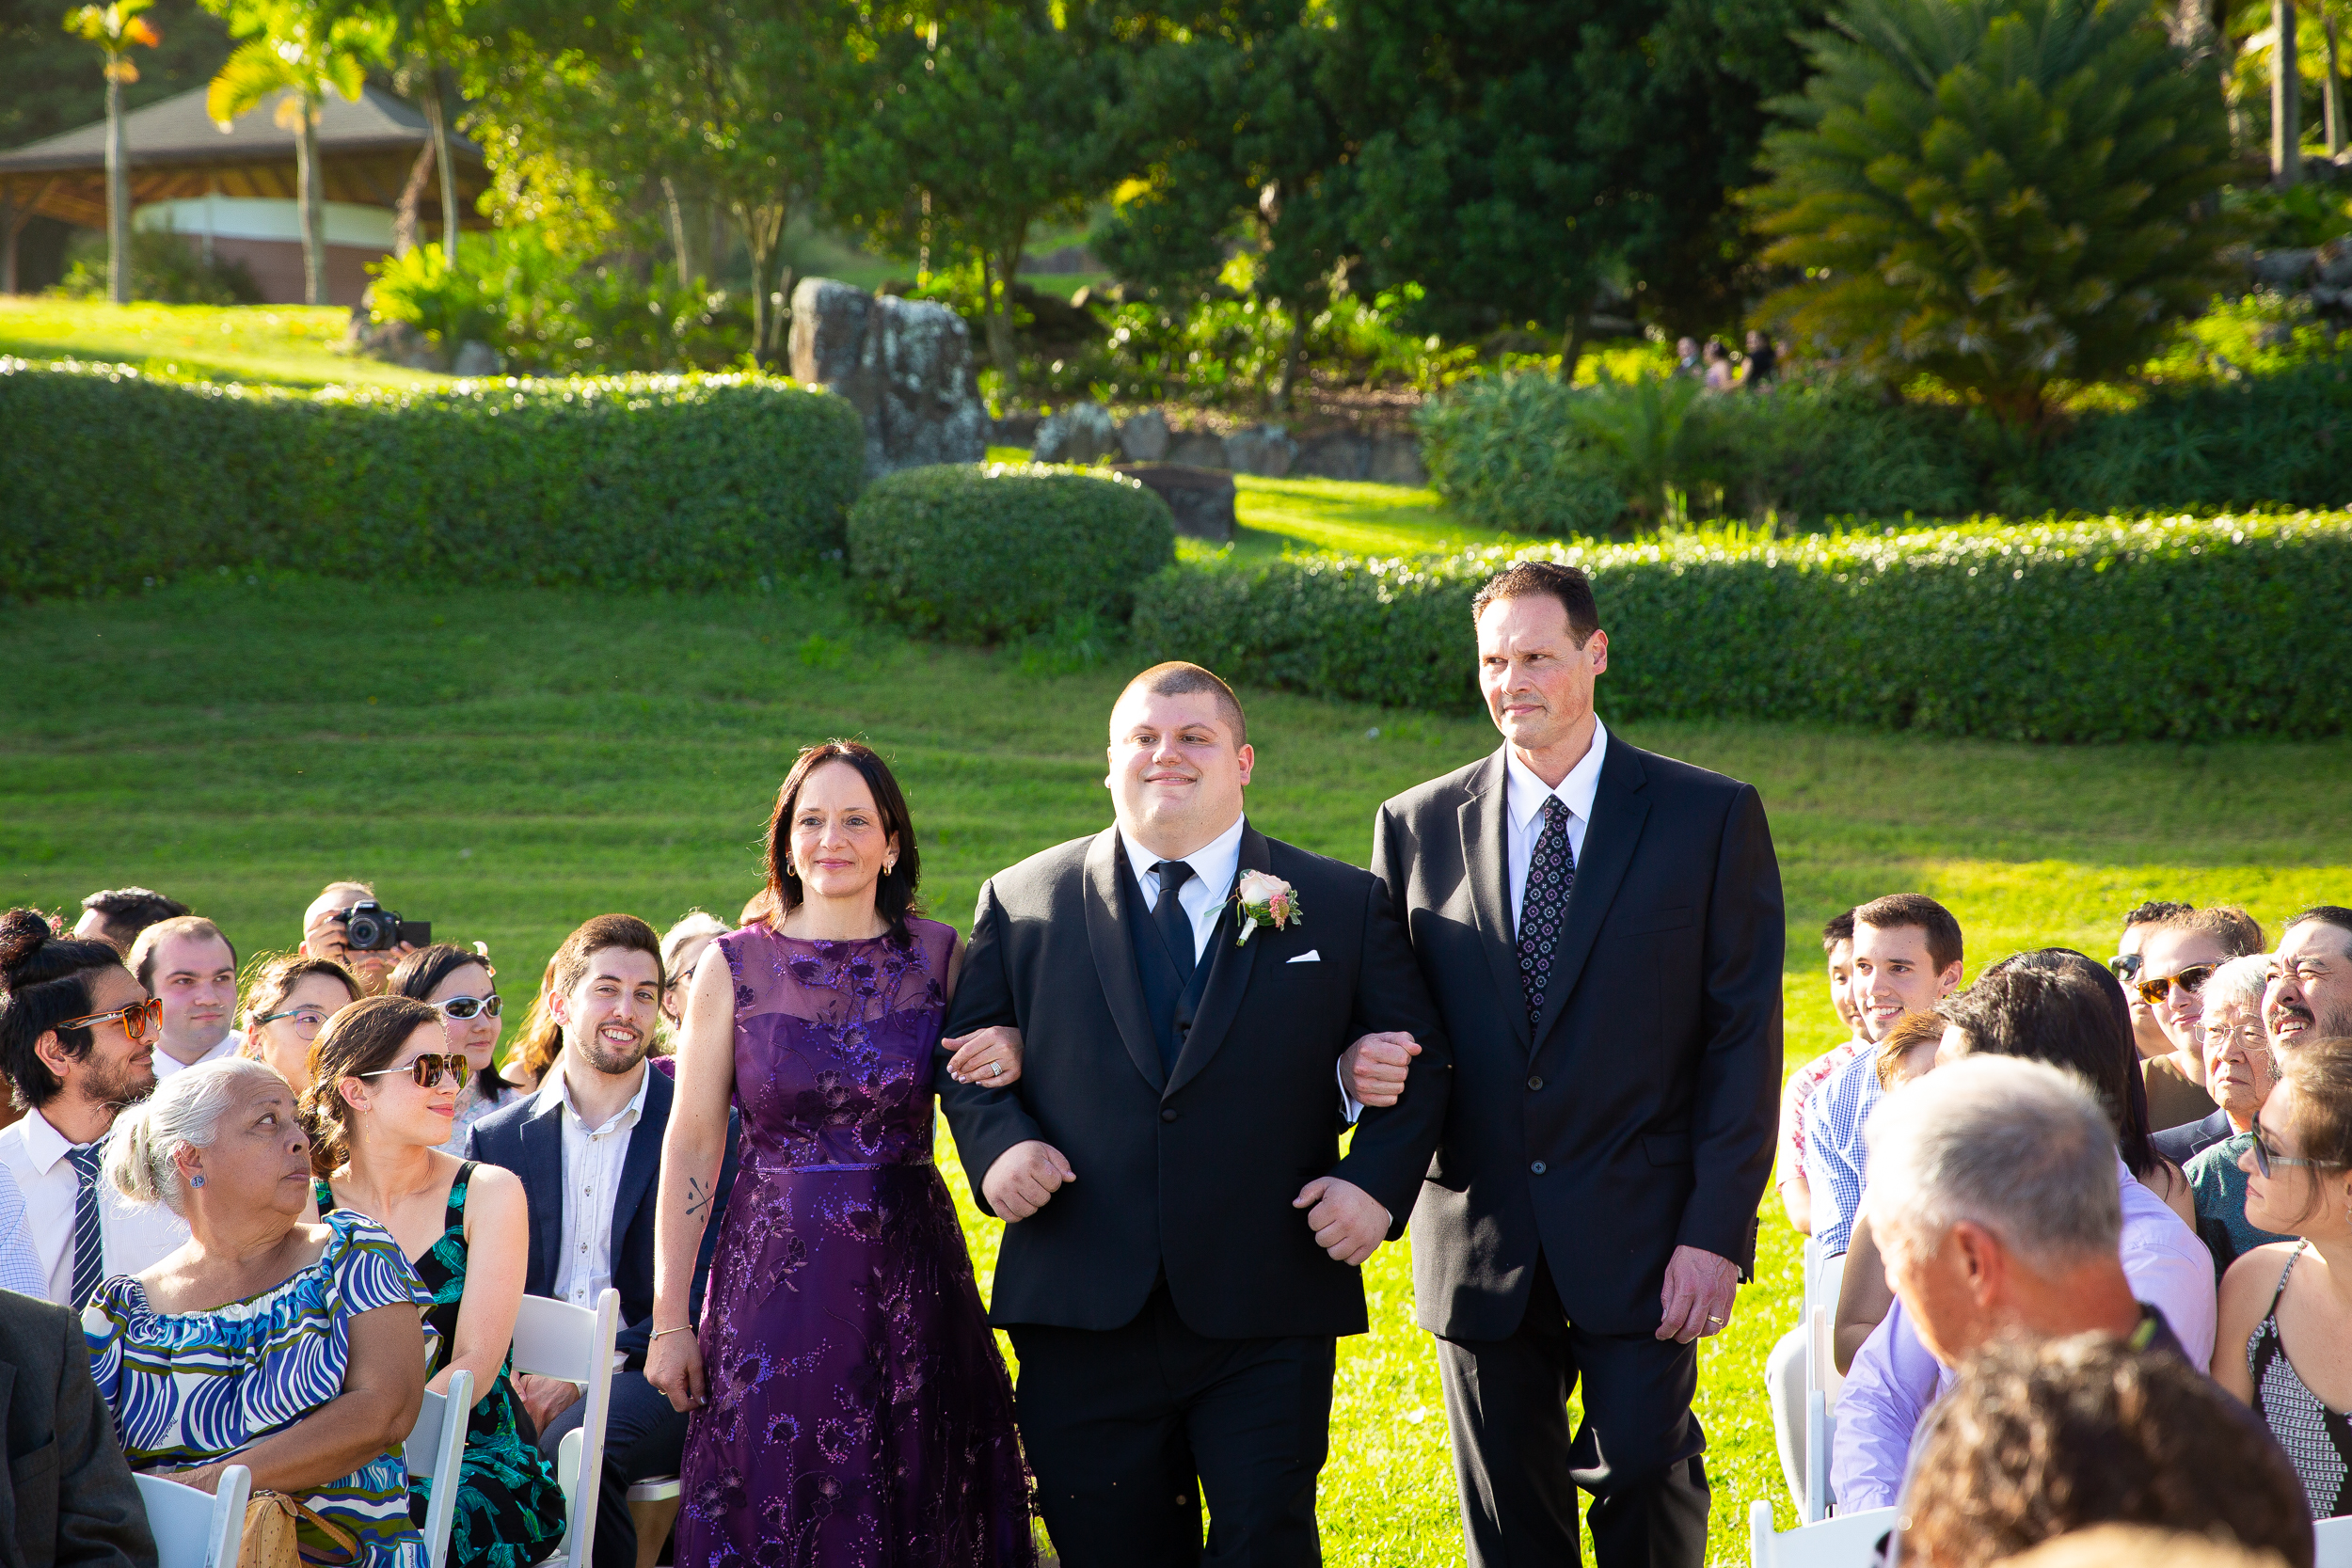 Kualoa Ranch Wedding in Hawaii -31.jpg